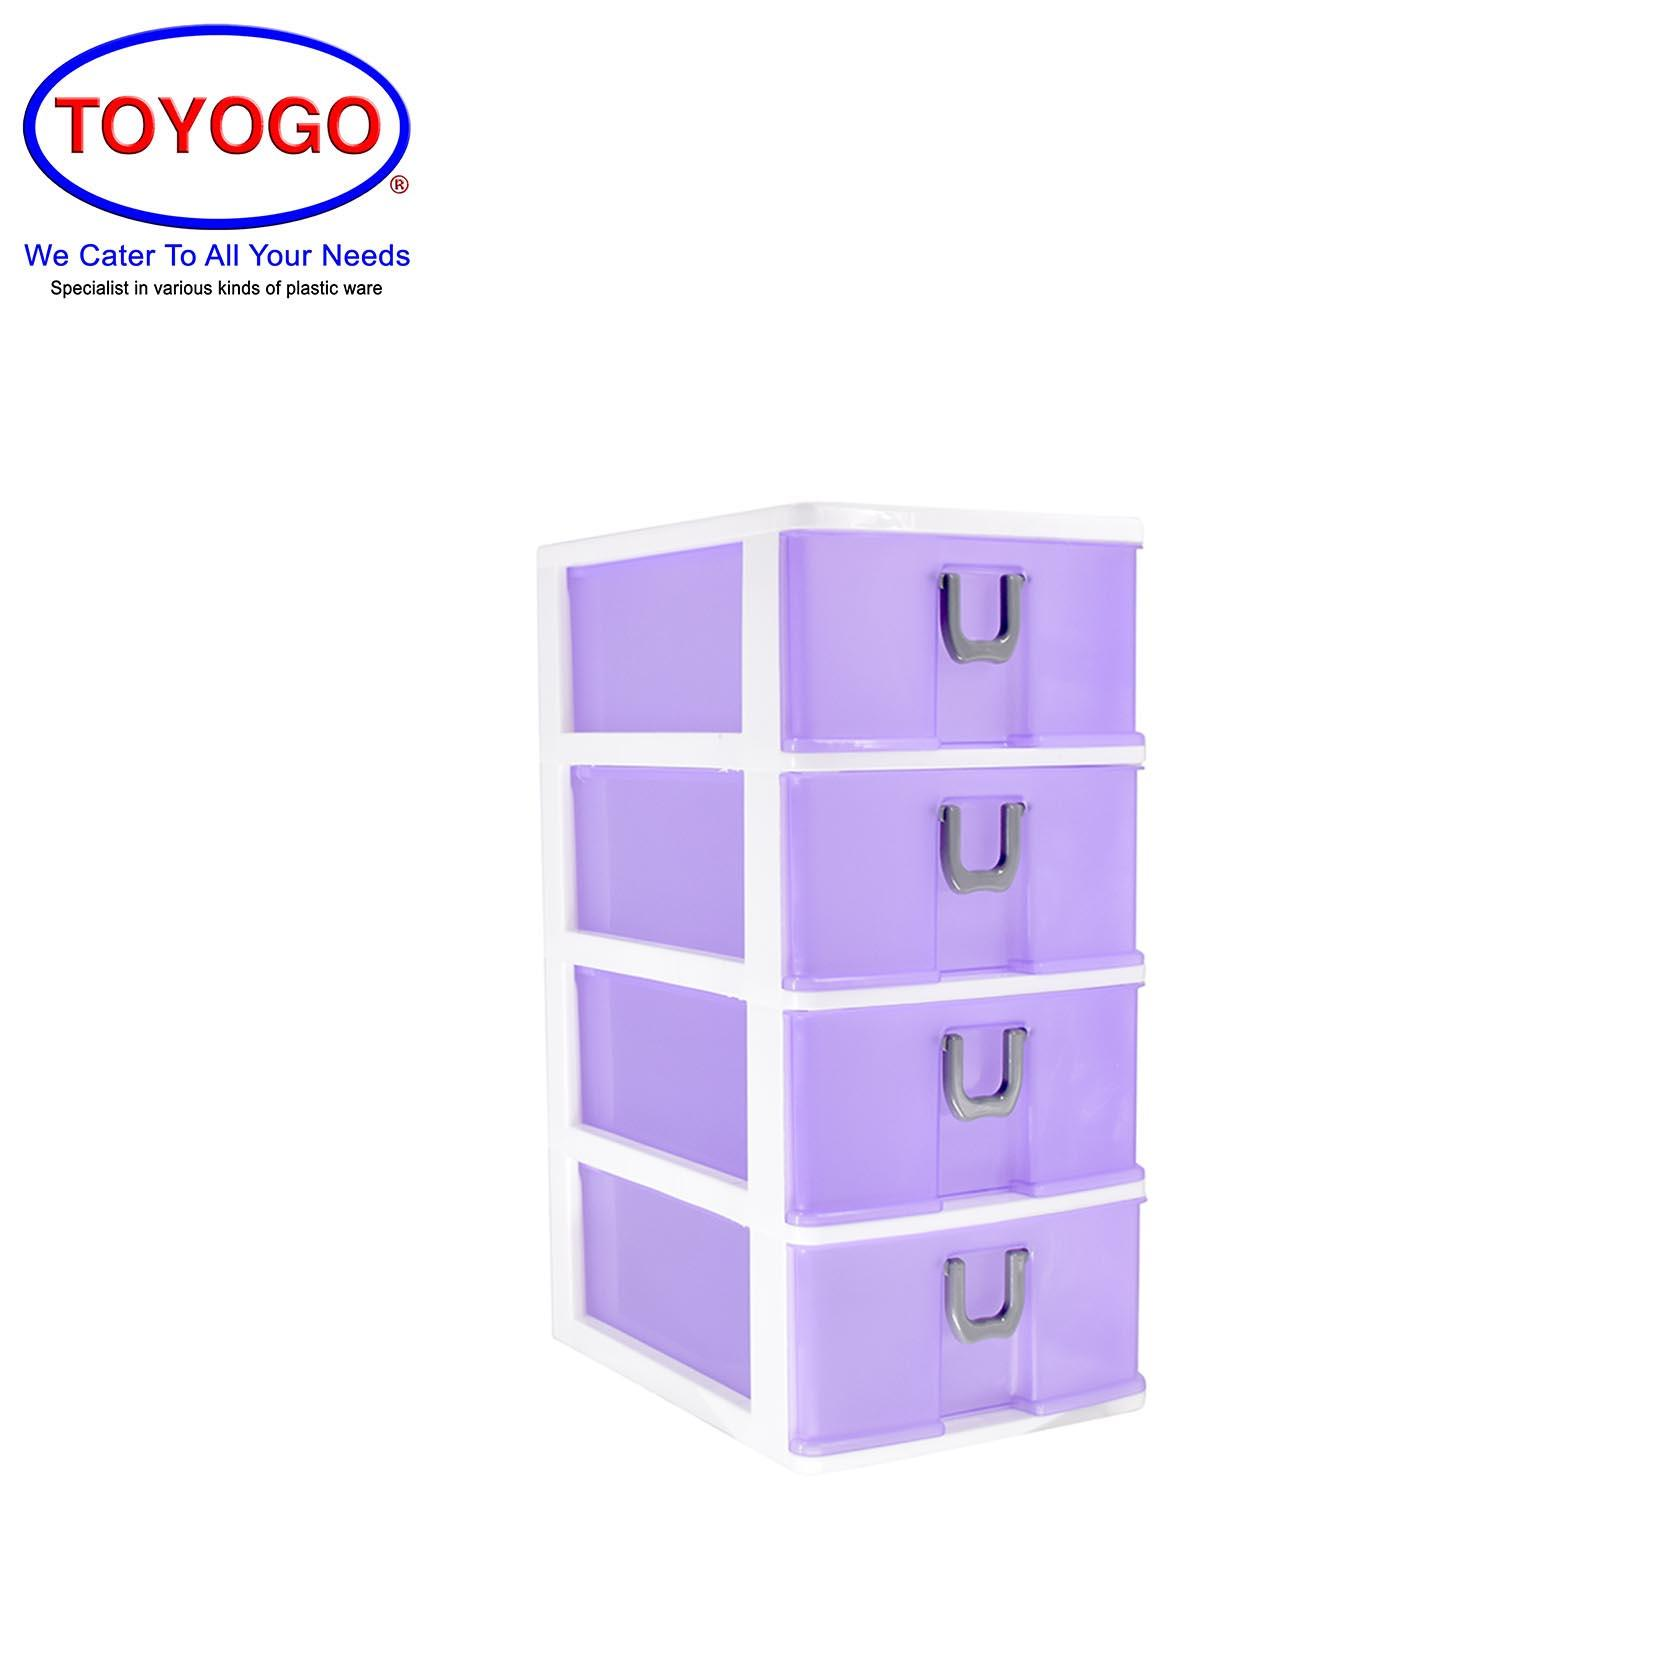 Toyogo Plastic A4 Drawer (4 Tier) (402-4)